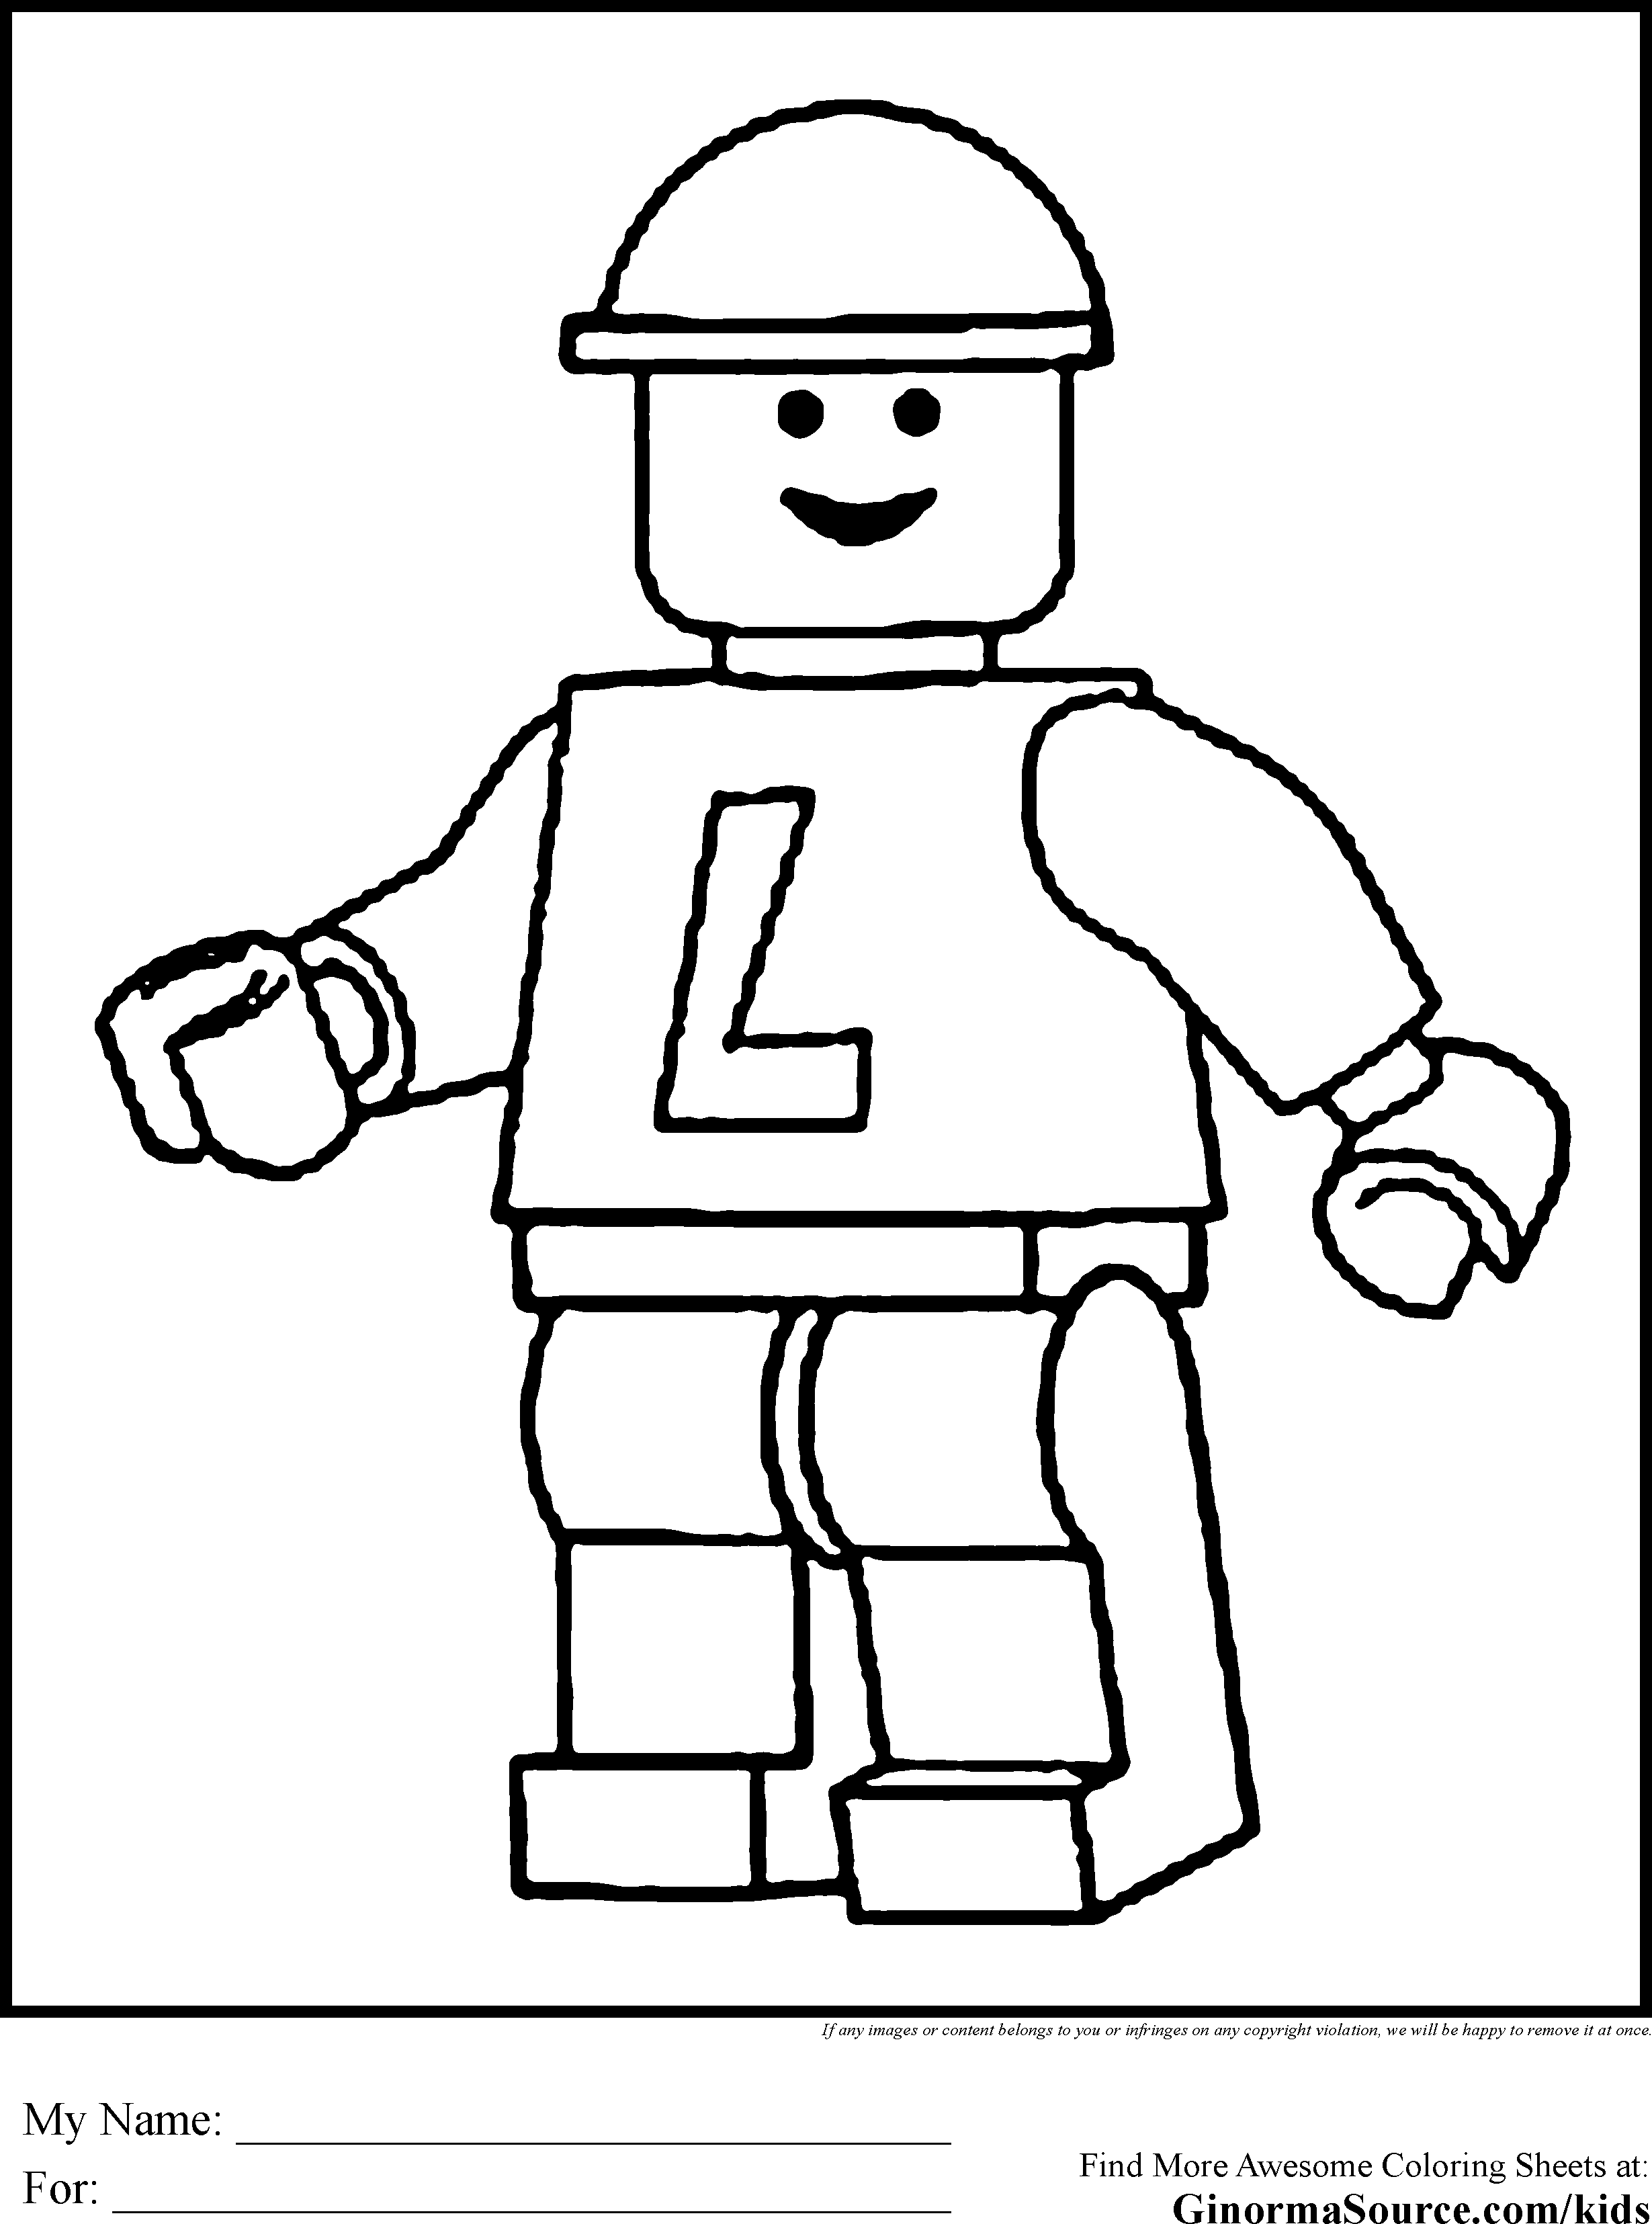 lego people coloring pages 25 wonderful lego movie coloring pages for toddlers people pages coloring lego